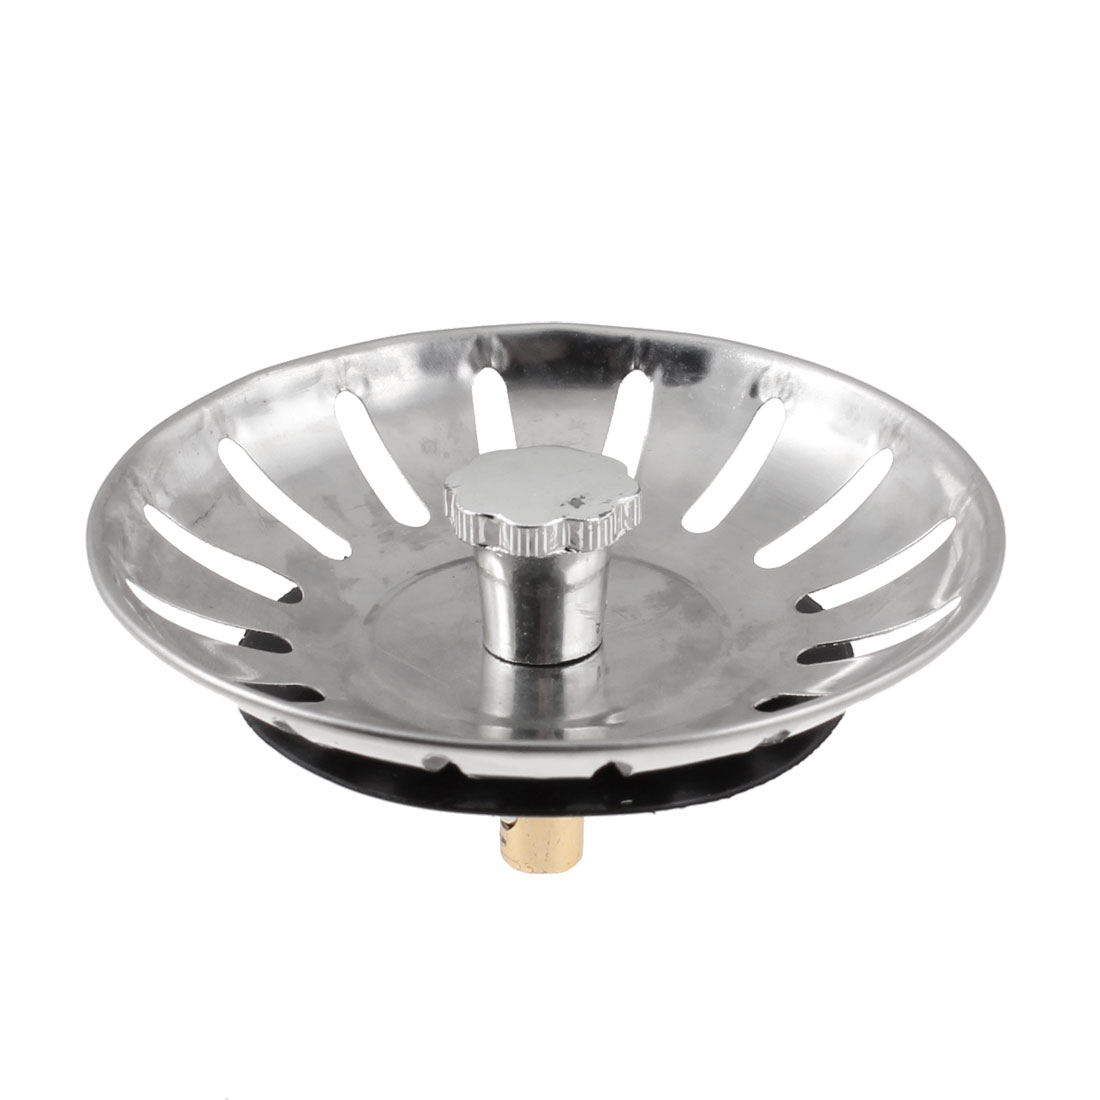 Kitchen 16 Holes Flexstem Basket Sink Strainer Drain Garbage Stopper